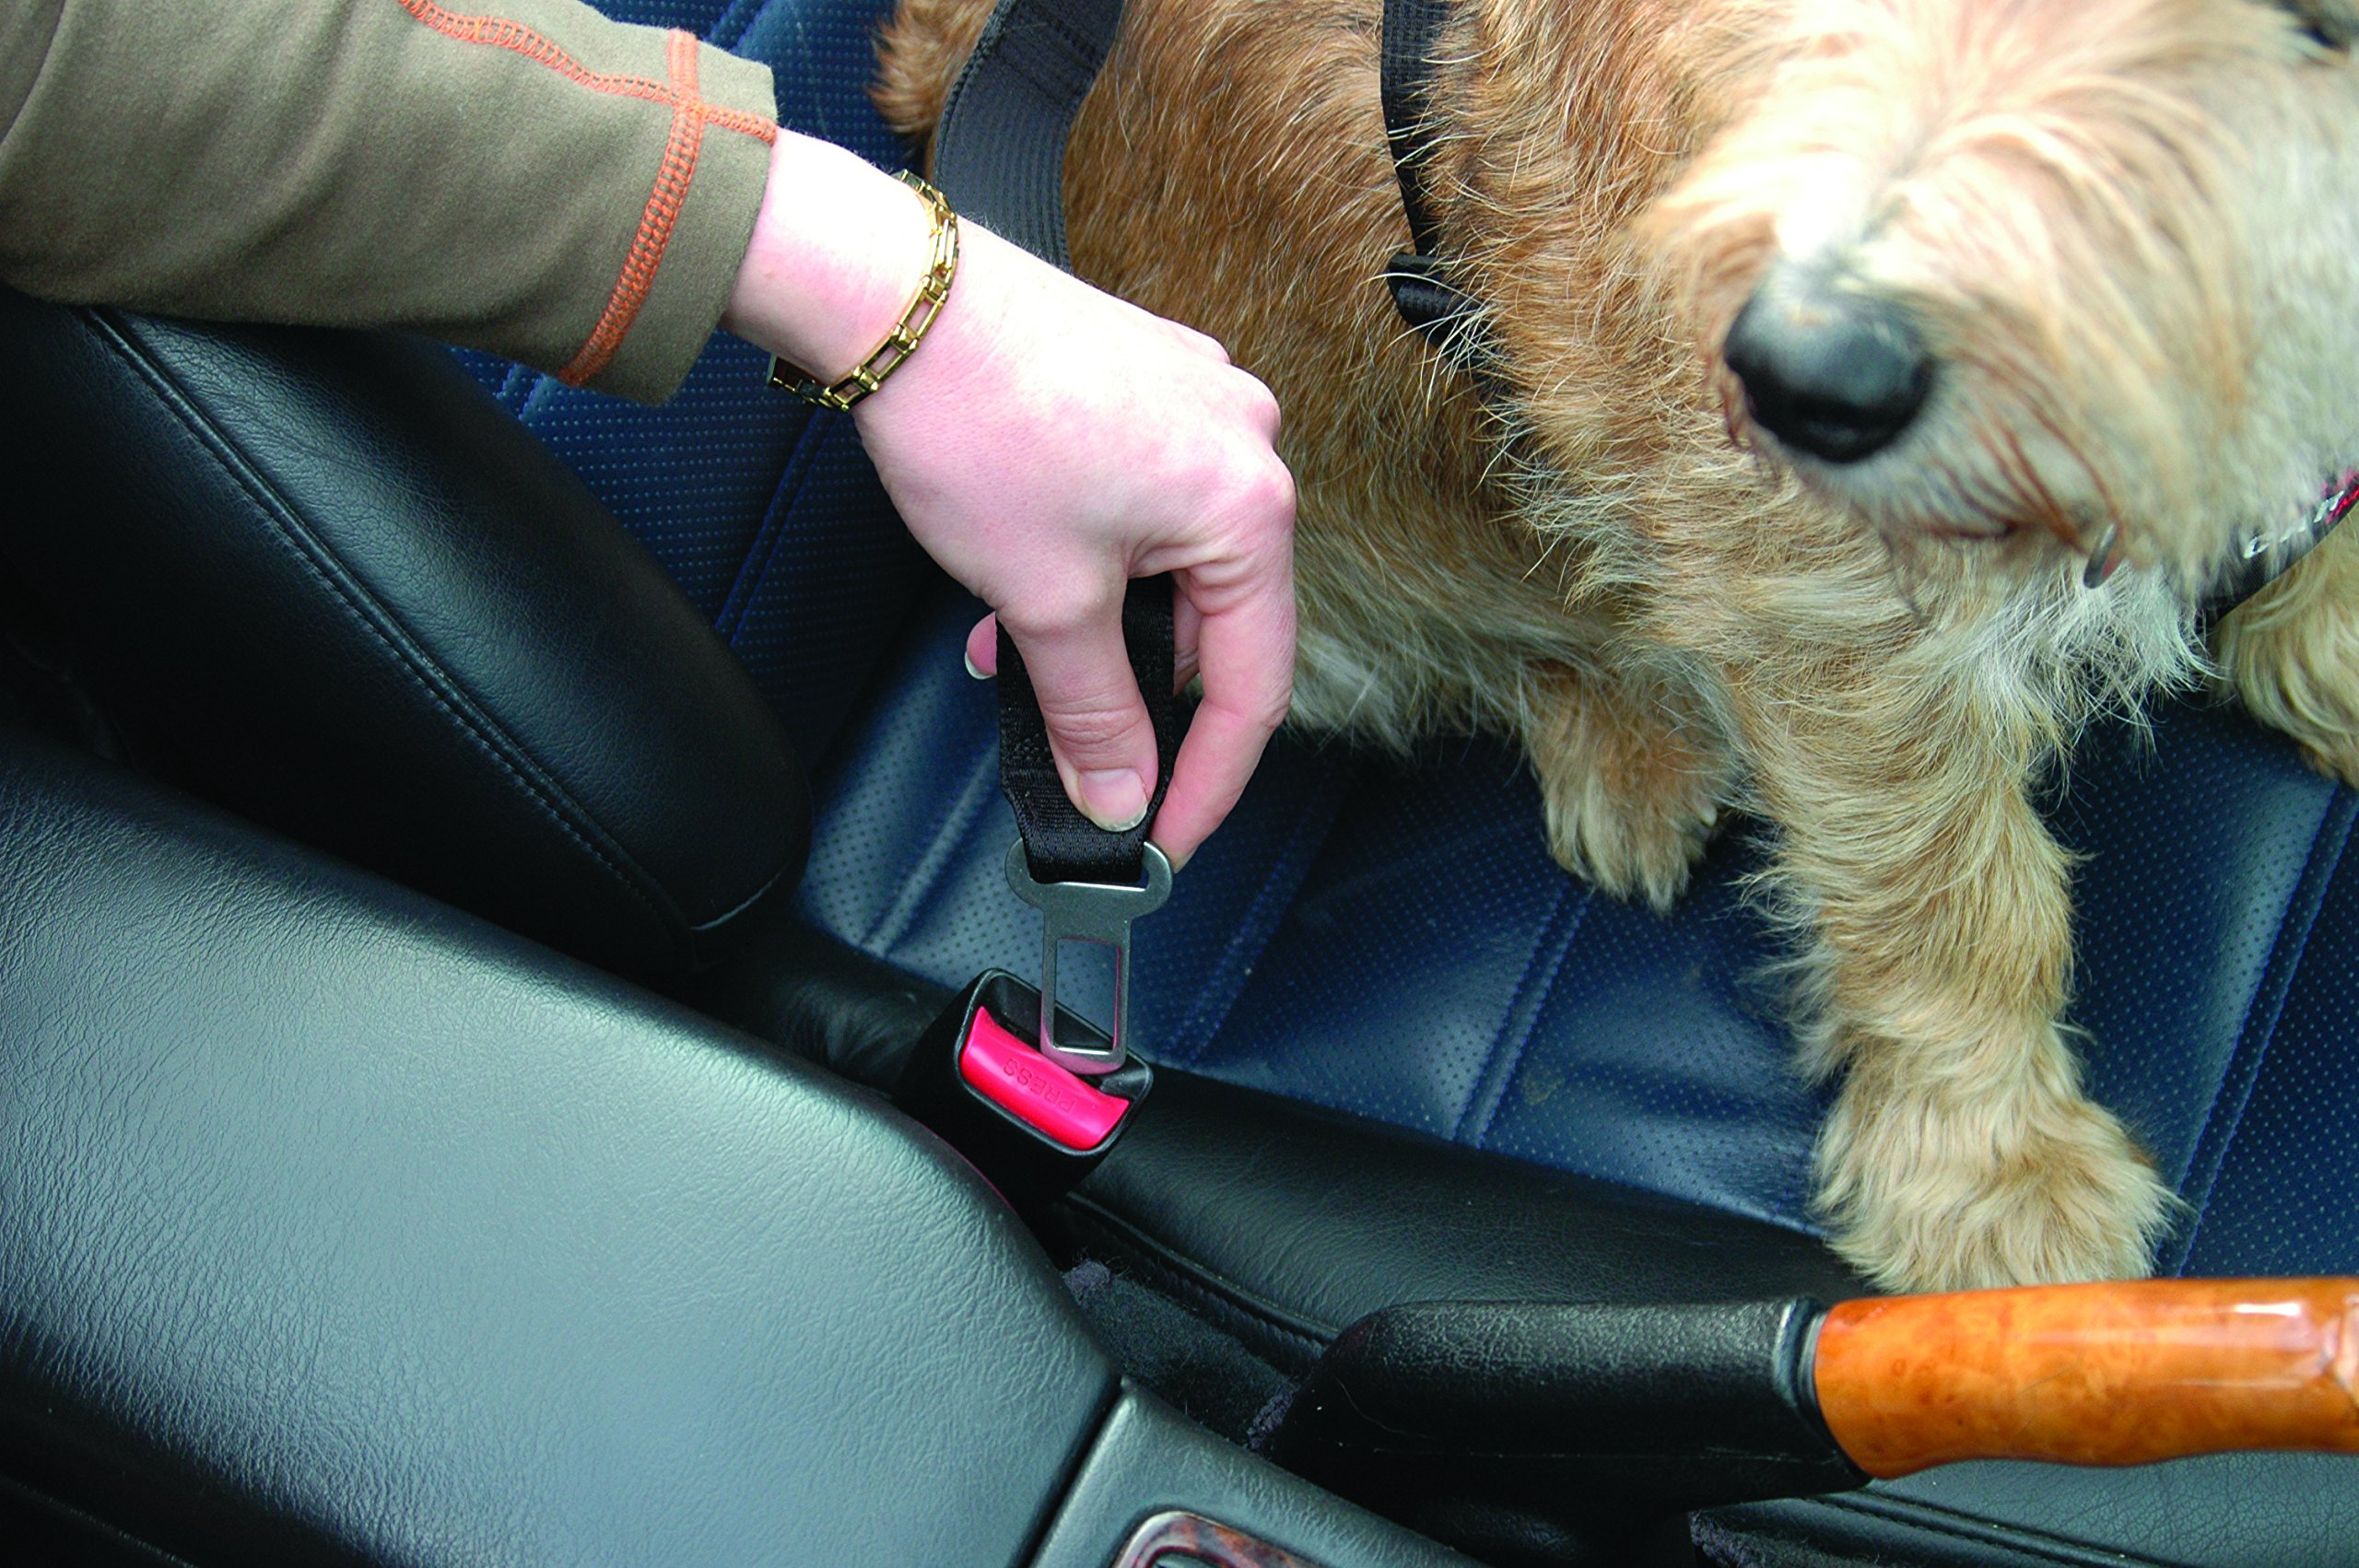 The Company of Animals - CLIX CARSAFE Dog Harness - Multi-Purpose Car Seat Belt and Walking Harness - Easy, Adjustable, Secure and Safe - X-Small by The Company of Animals (Image #4)